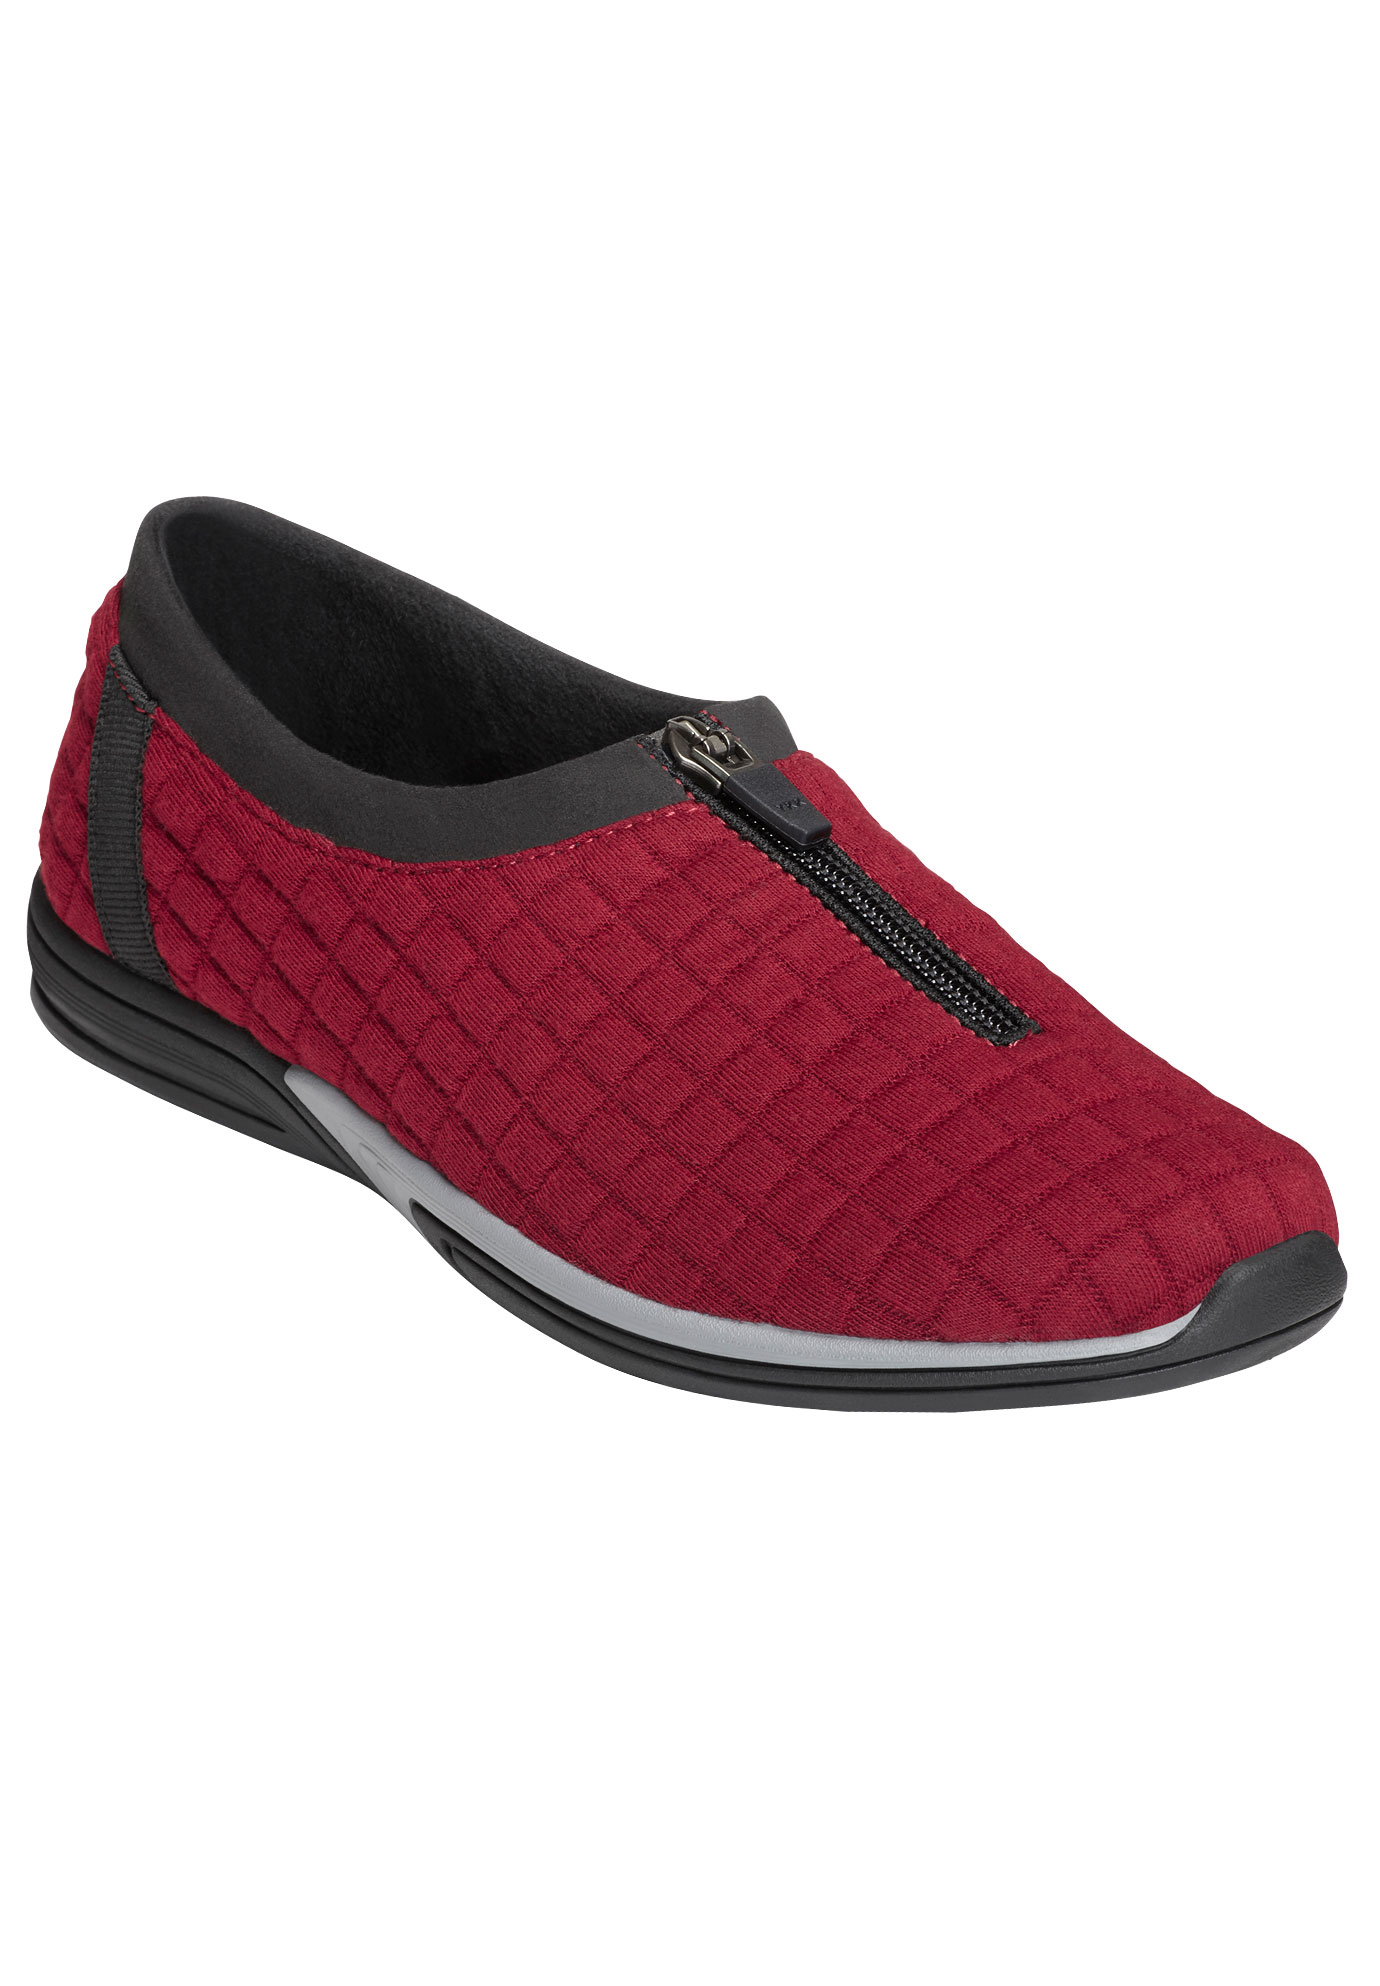 Traveler Flats by Aerosoles®, DARK RED COMBO, hi-res